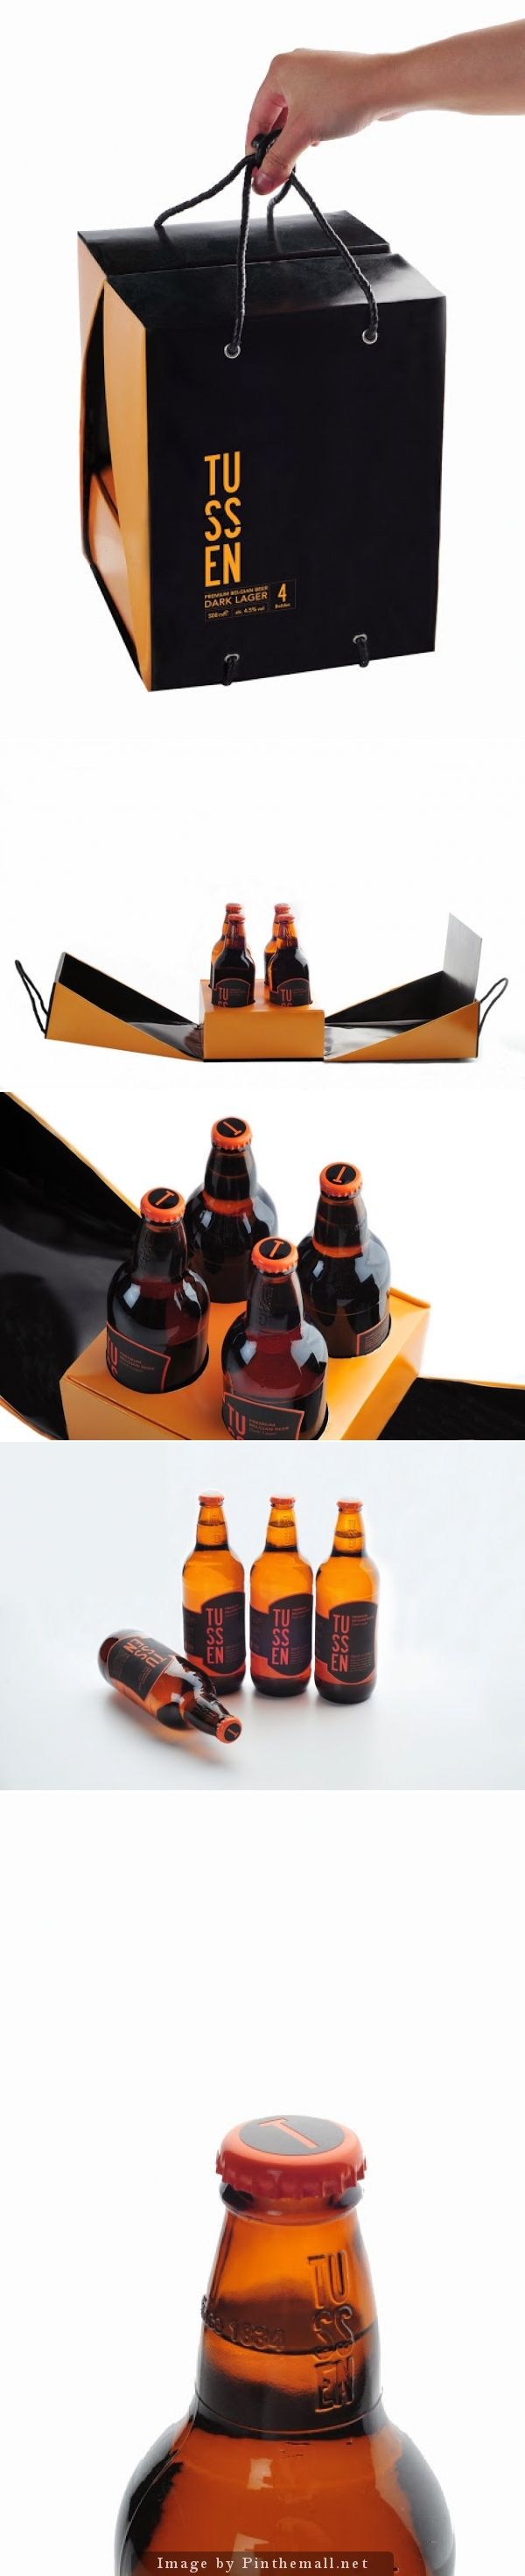 TUSSEN Premium Belgian Beer (Student Project)  cool packaging